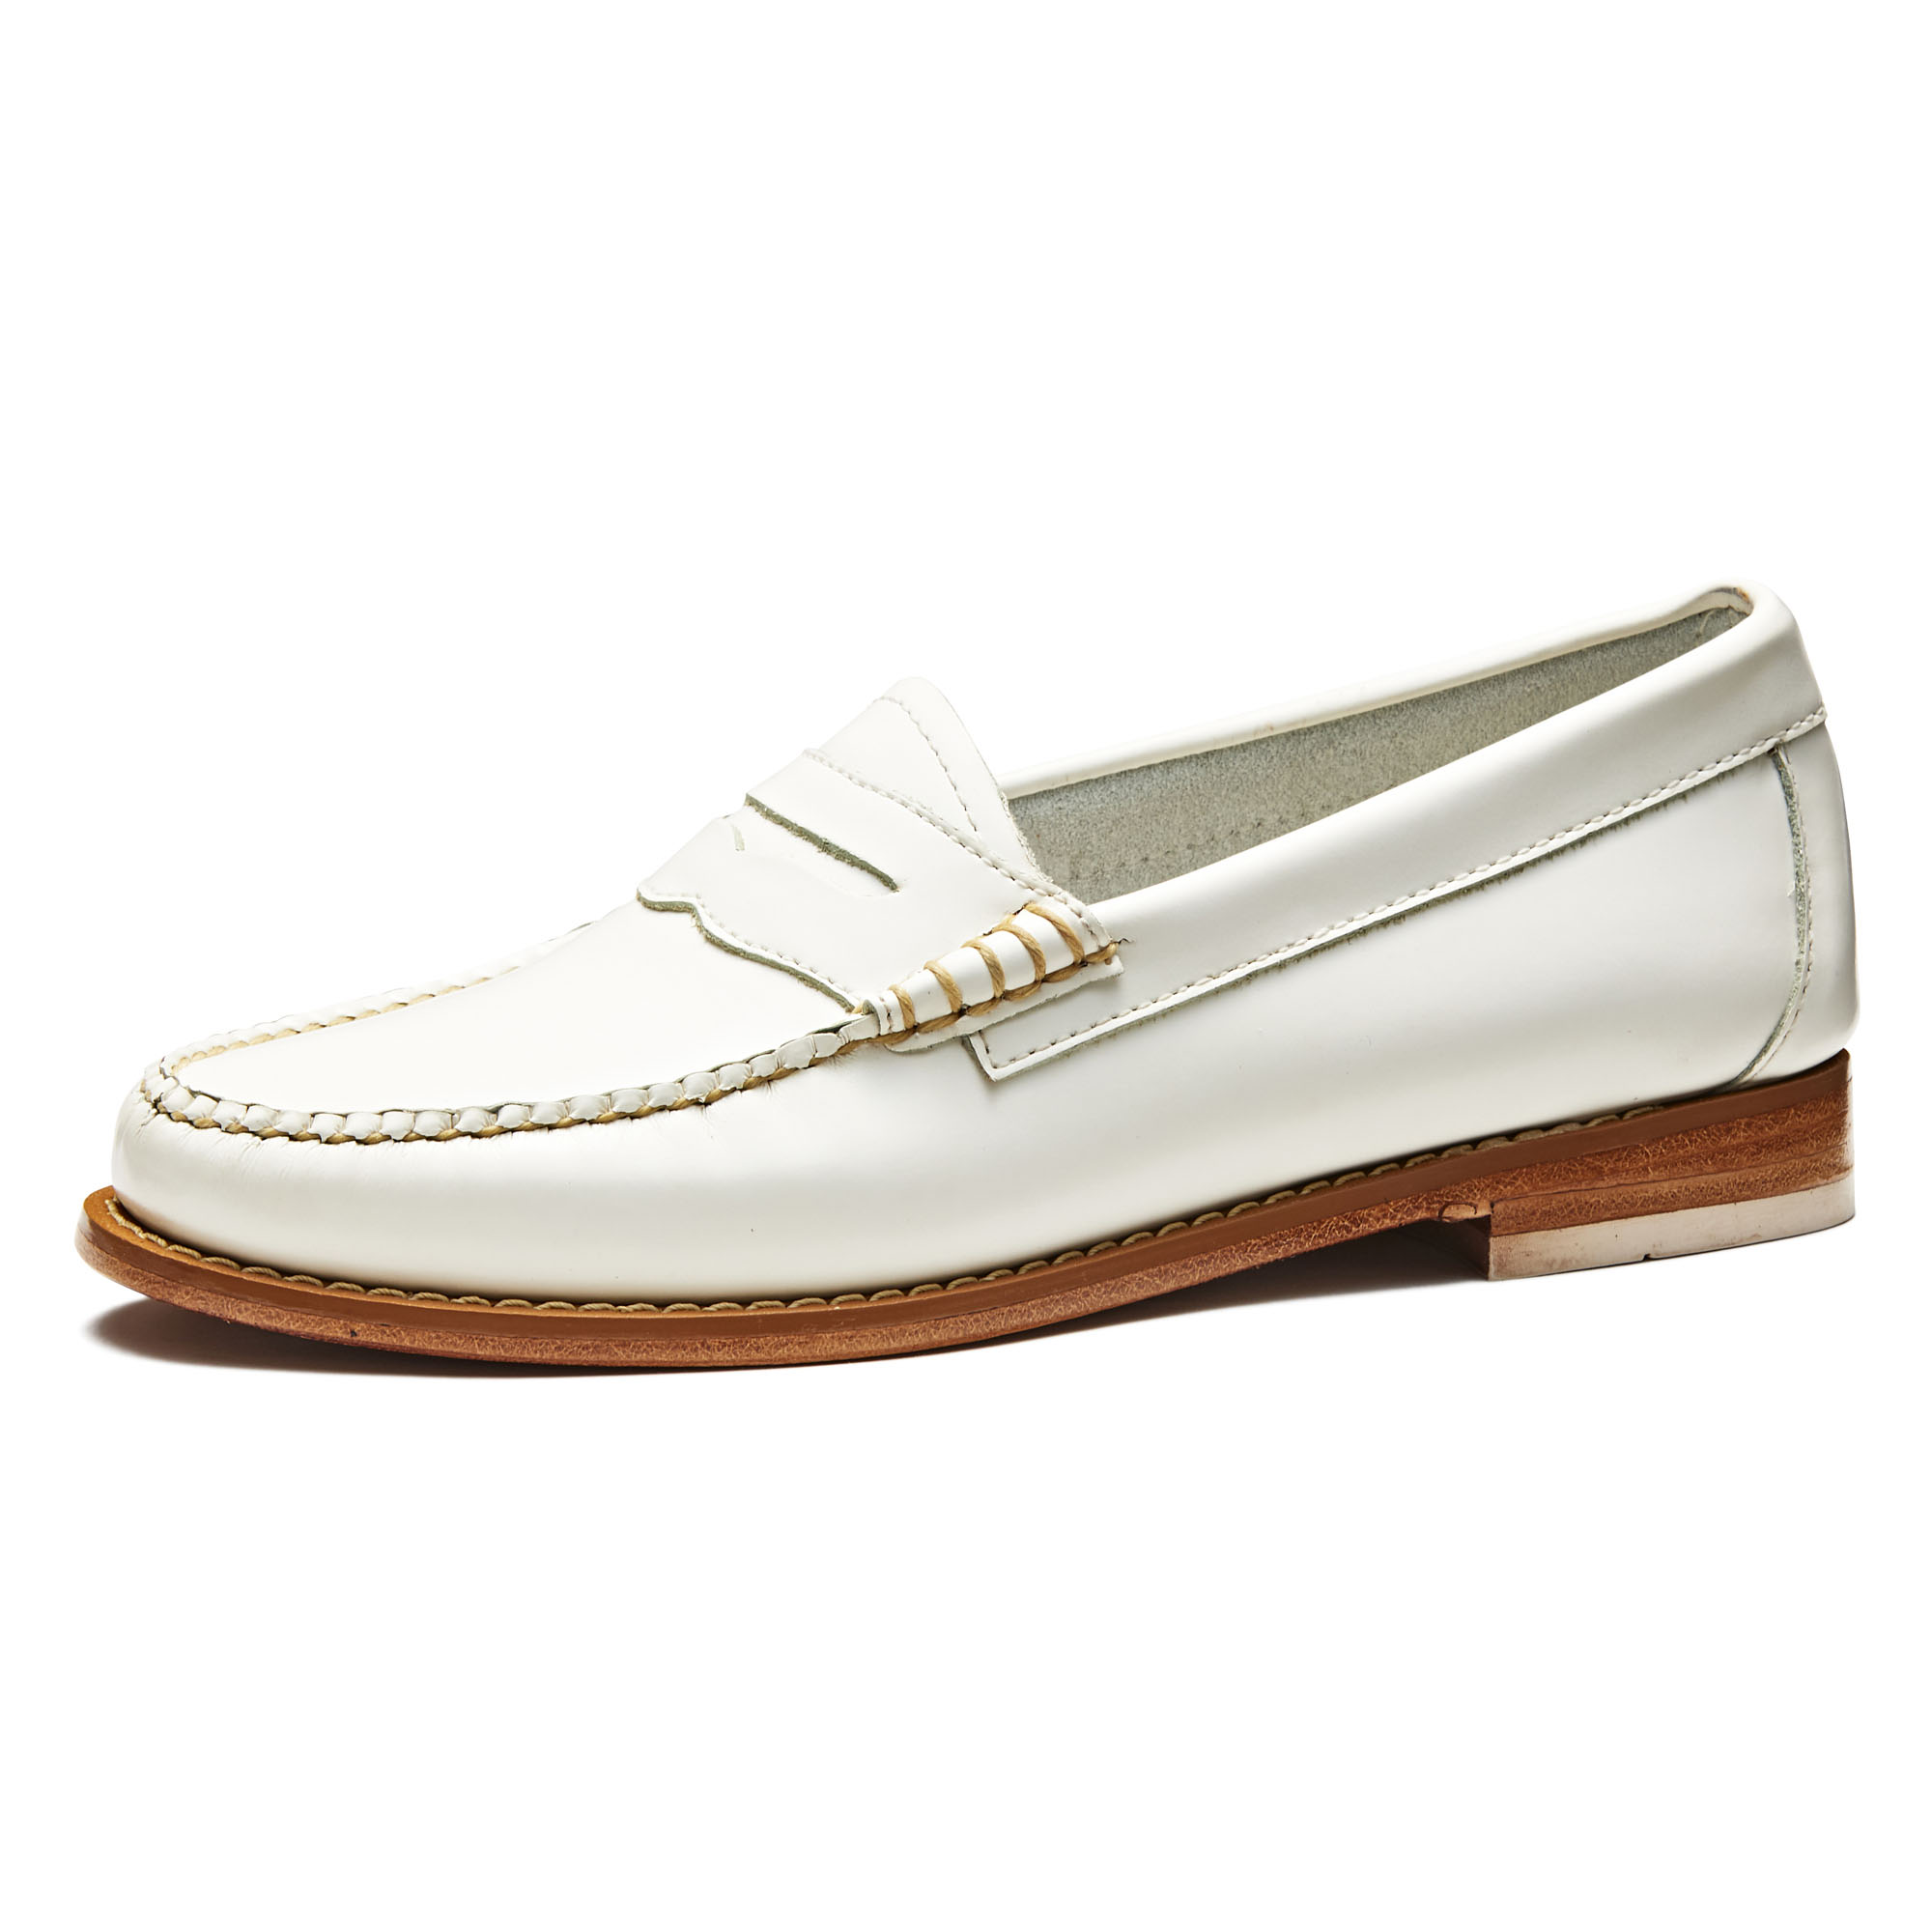 41010 / WHITE (LEATHER SOLE)